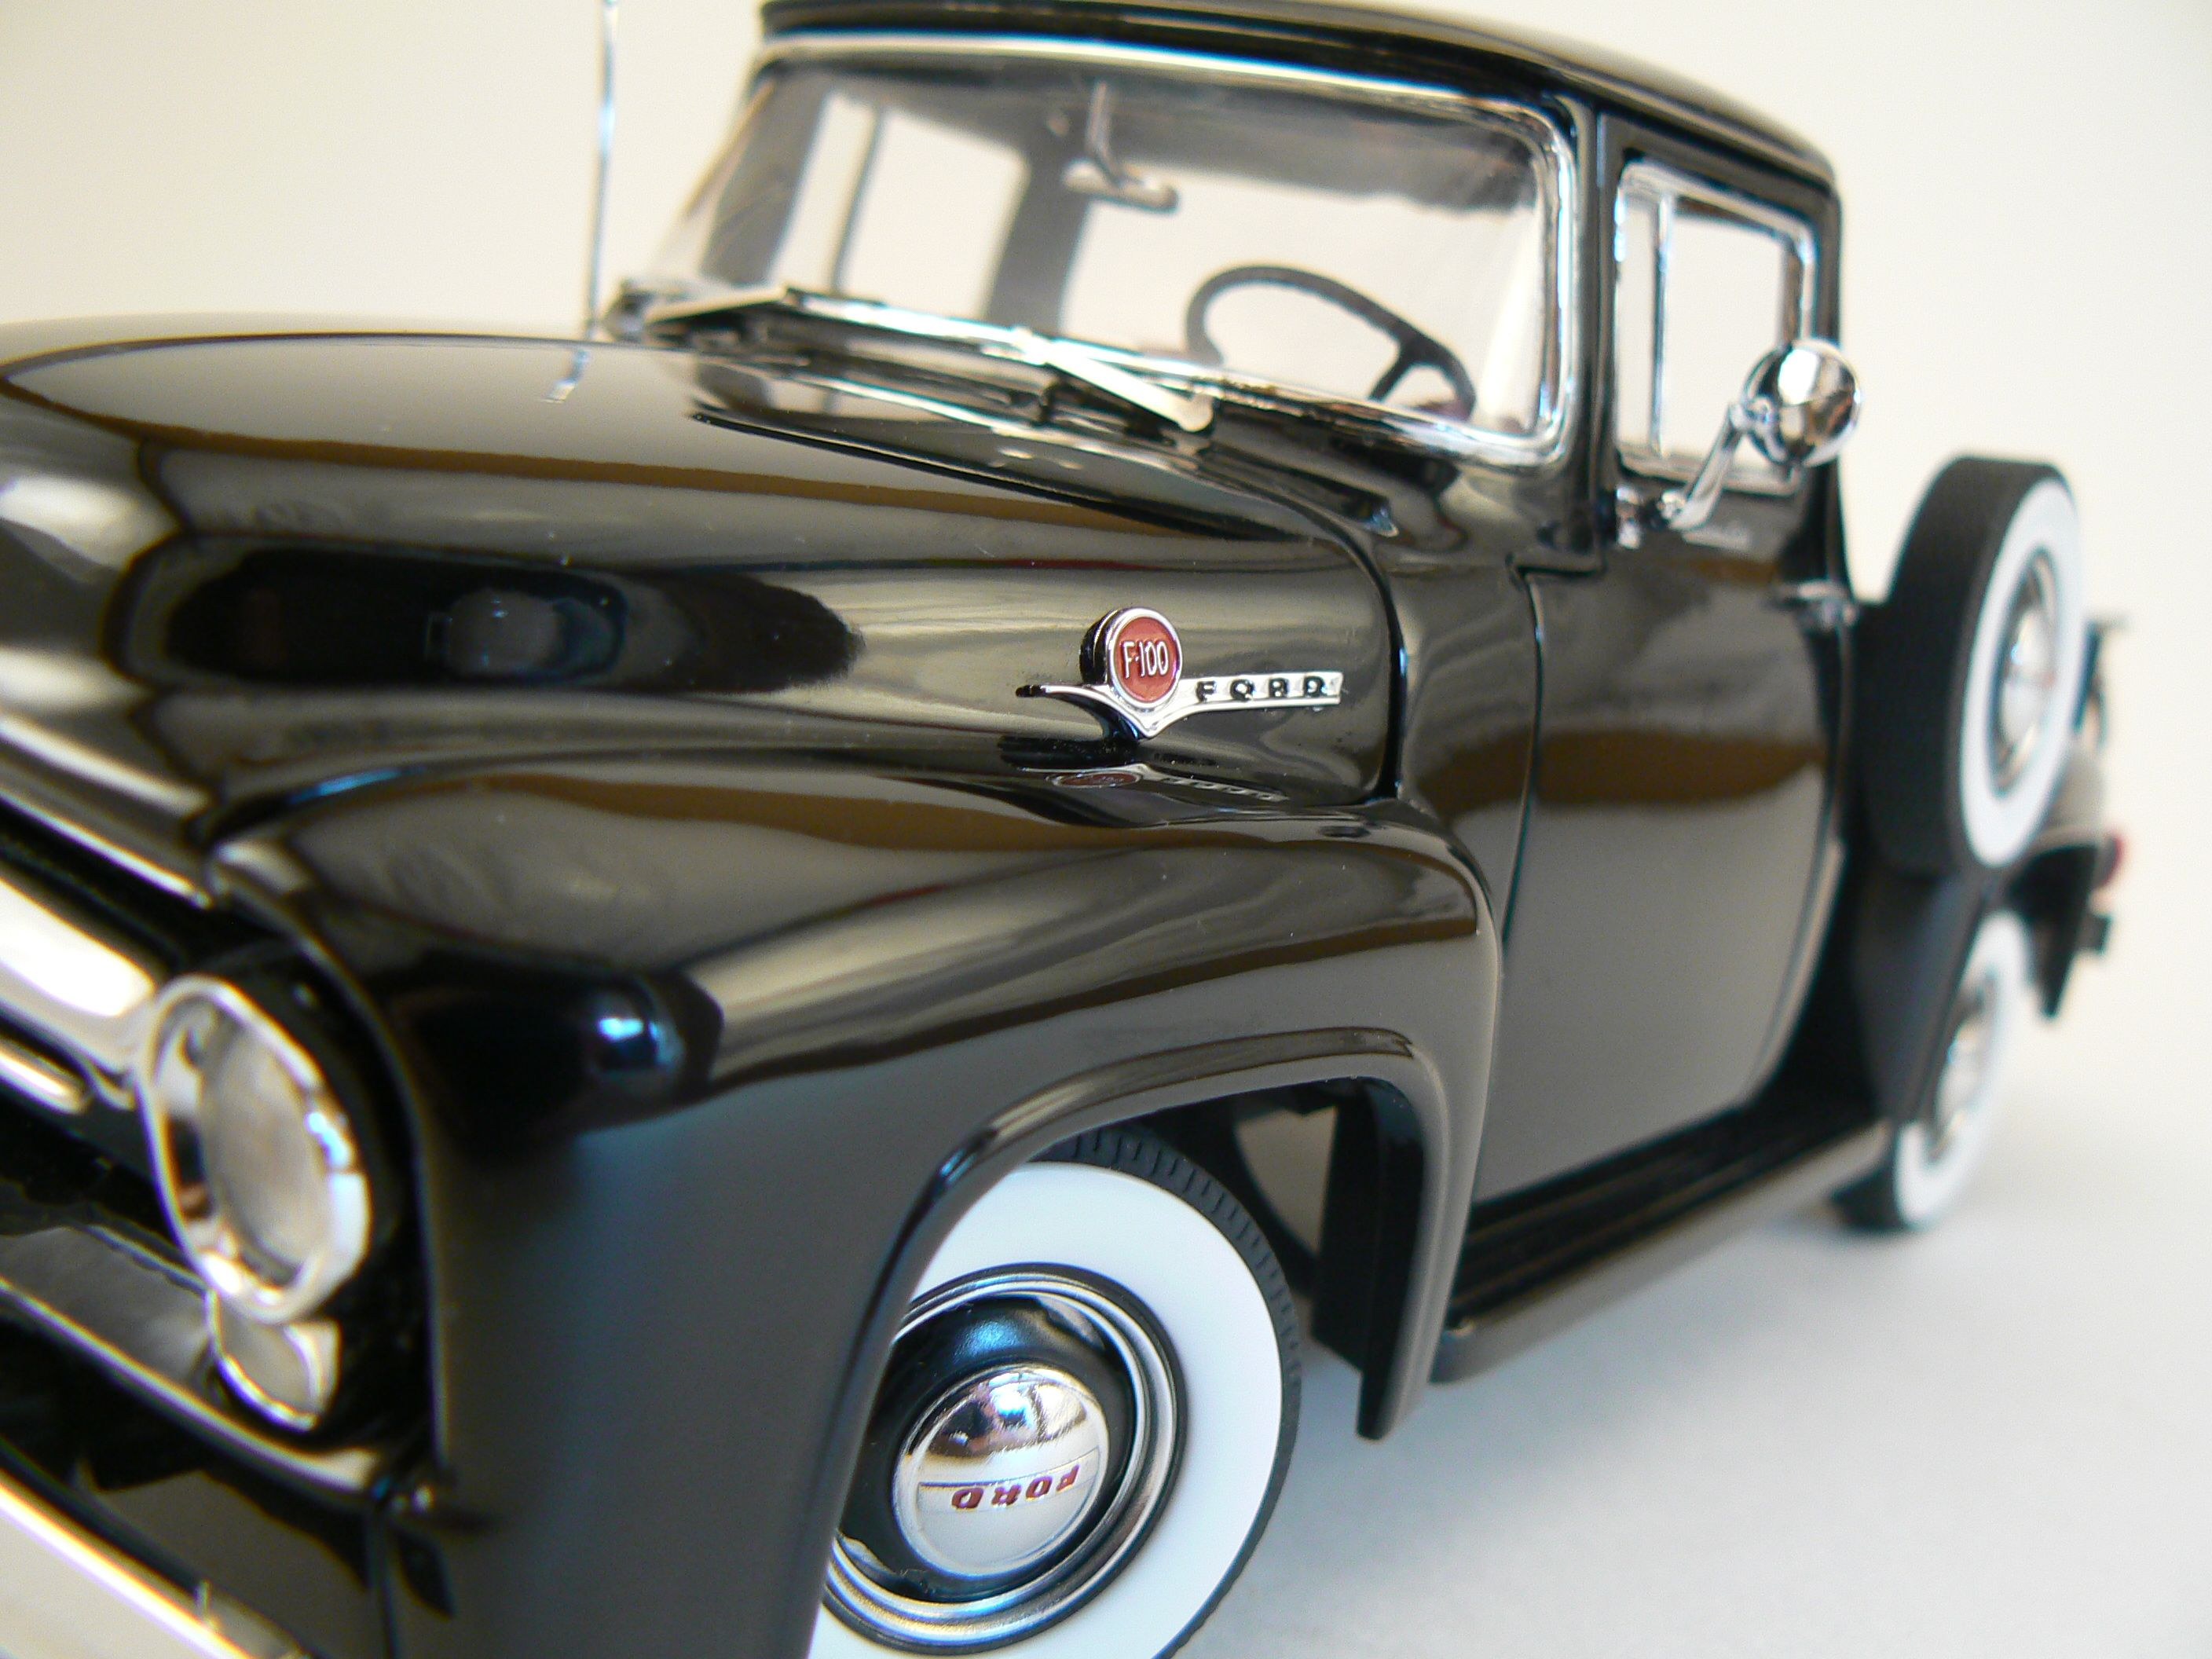 Ford F100 - Diecast 1:24 scale by Danbury Mint - Kentucky Trading Co ...